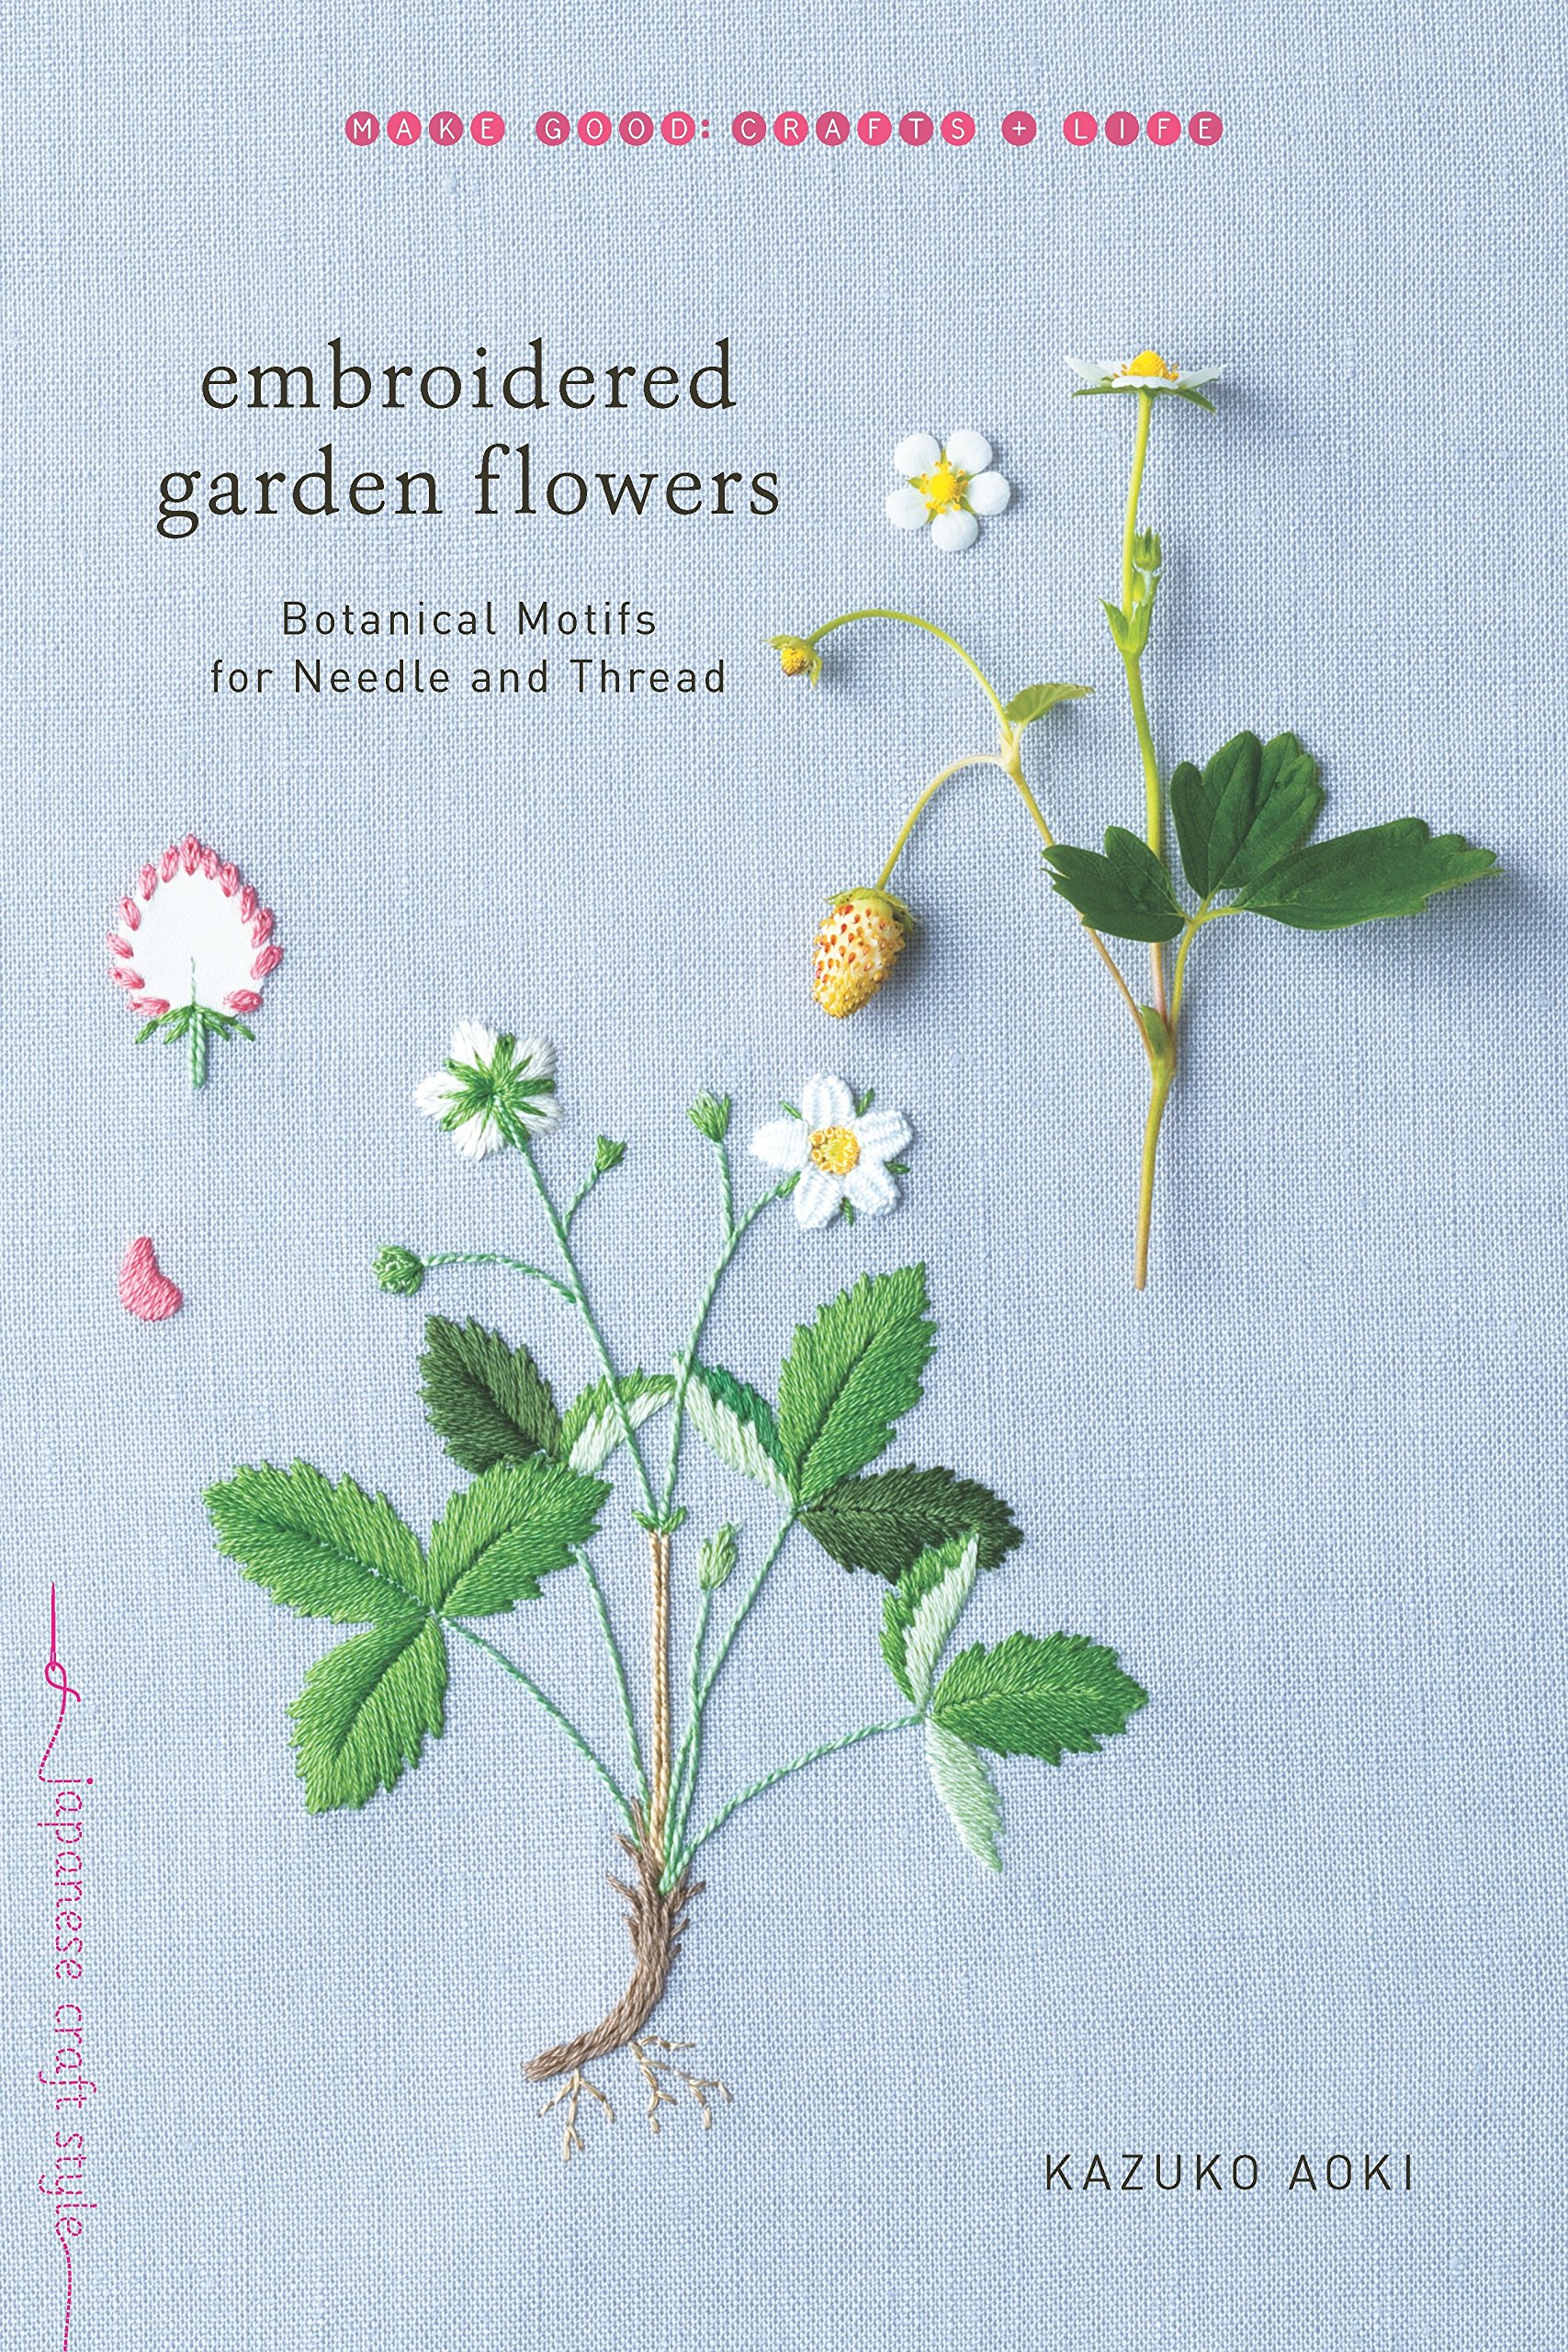 embroidered garden flowers botanical motifs for needle and thread make good crafts life kazuko aoki 9781611804546 amazoncom books - Embroidery Garden